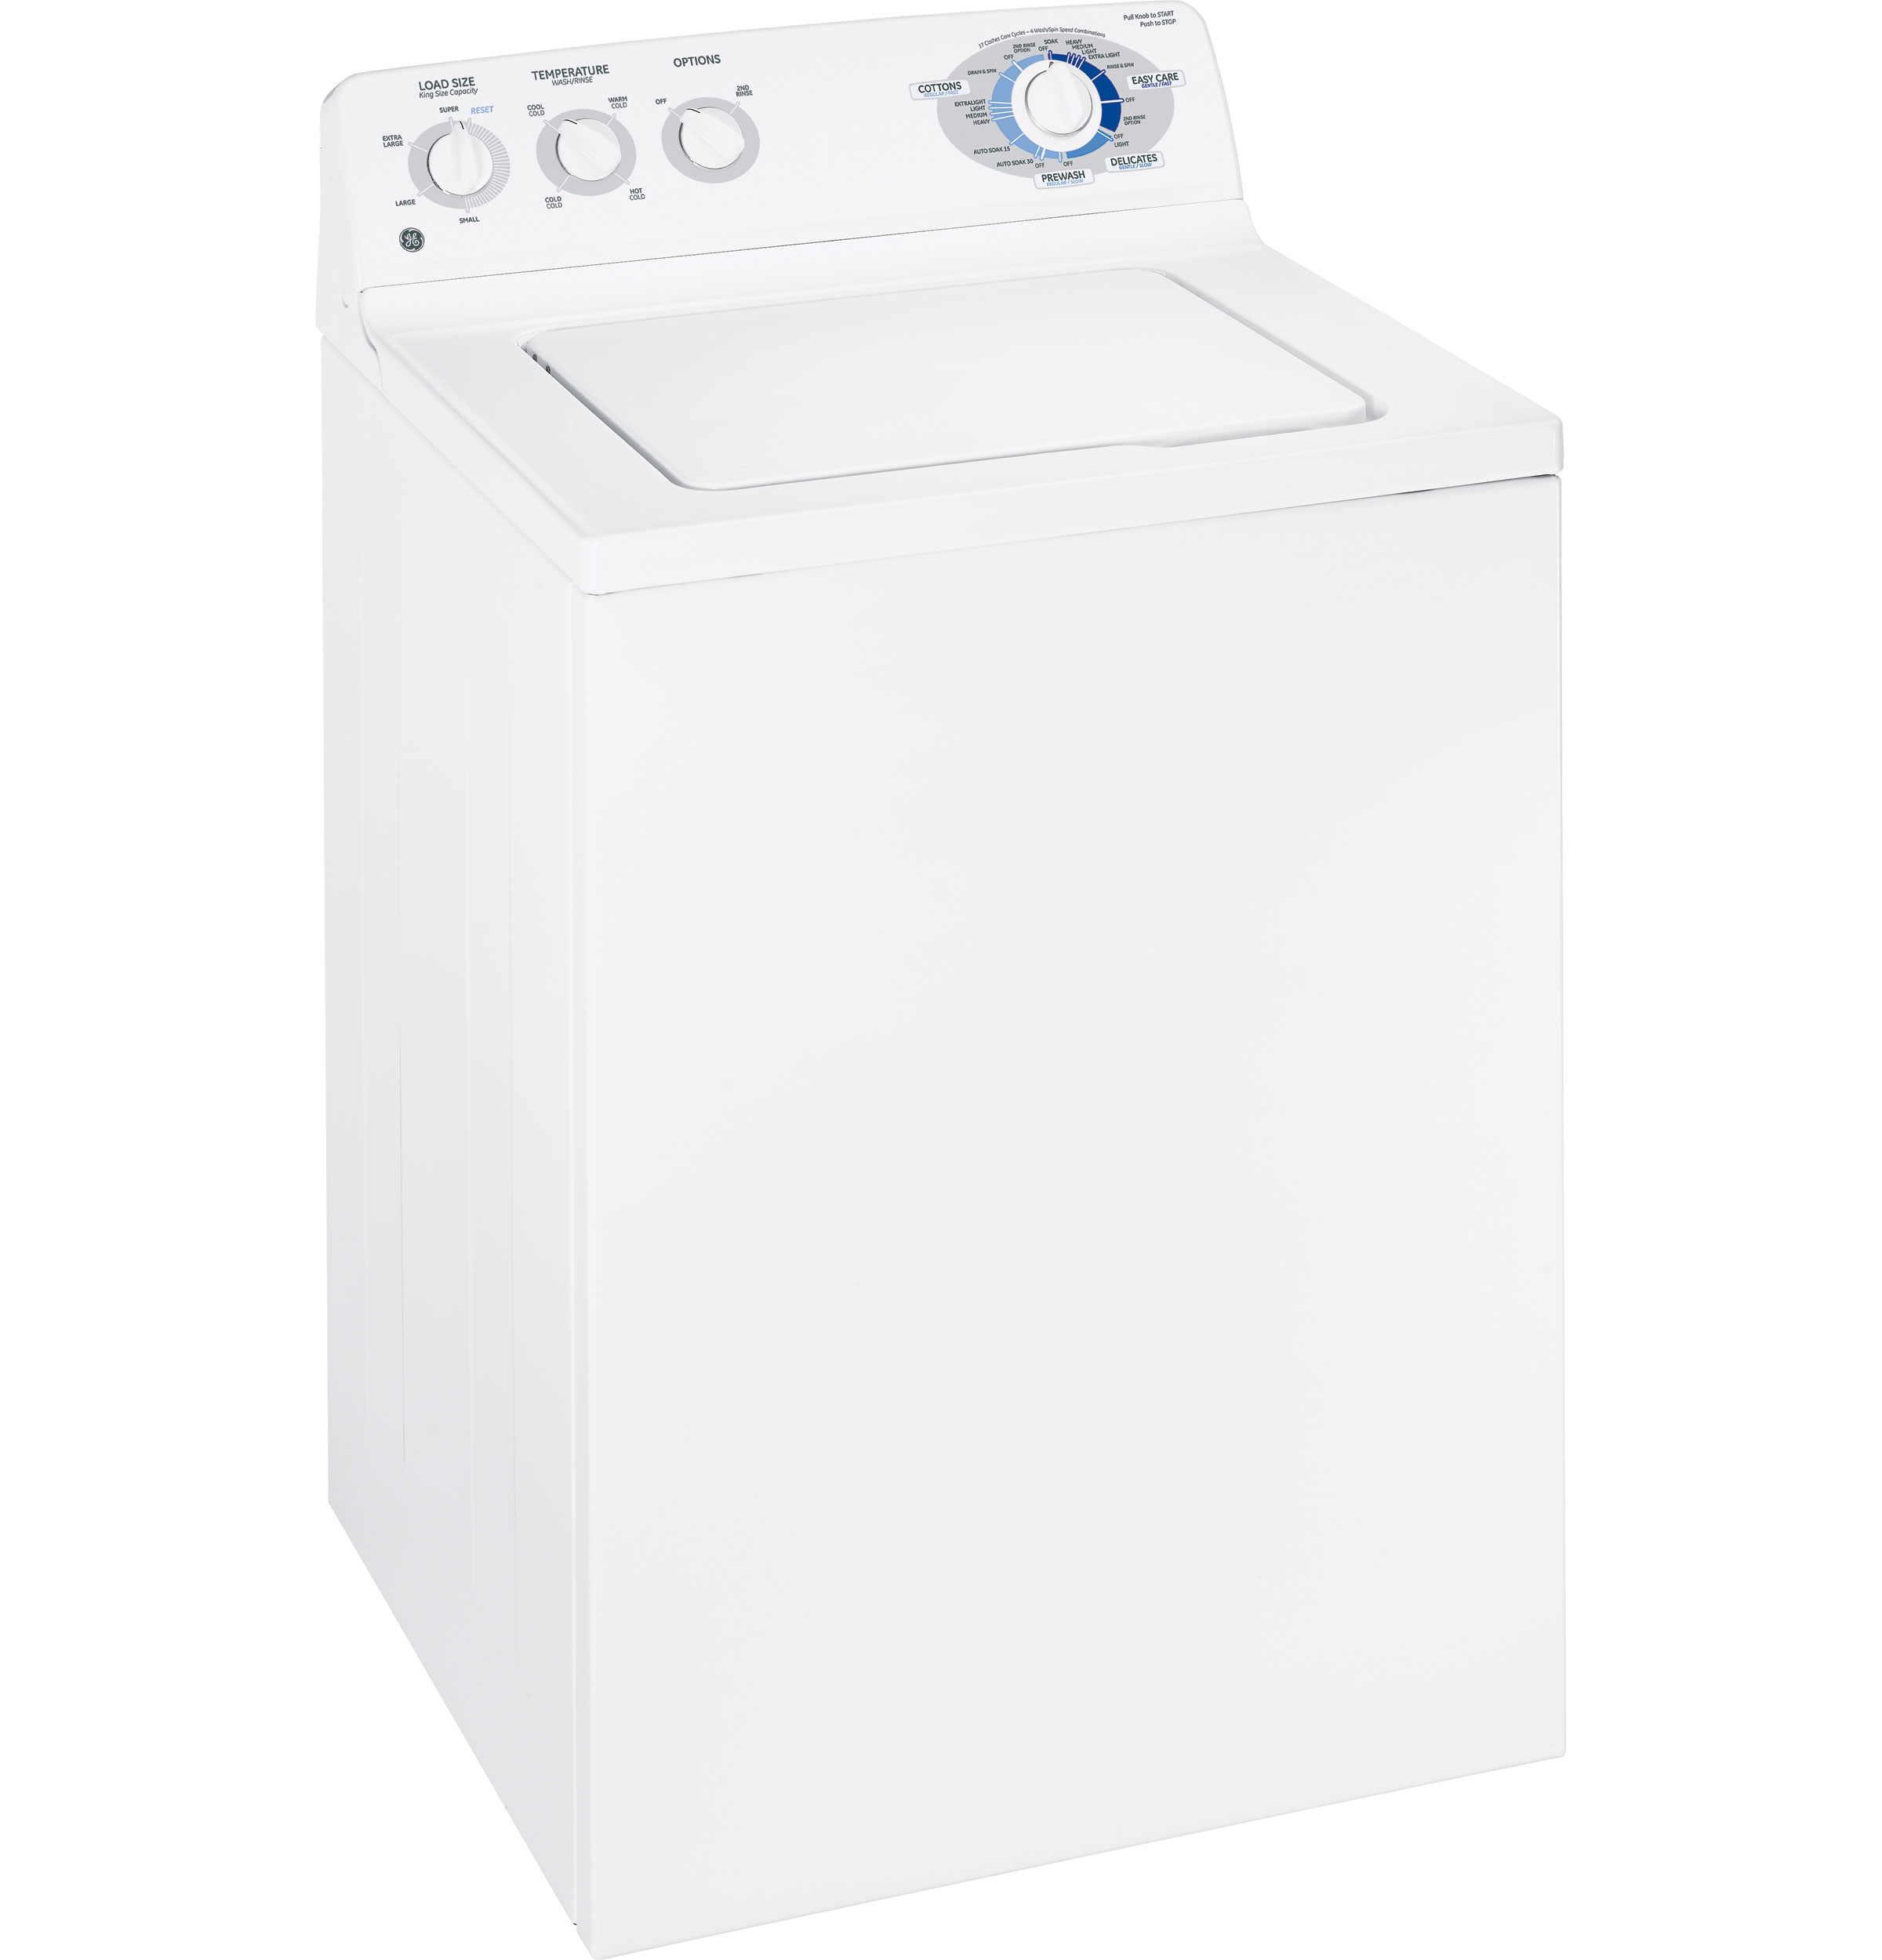 Ge Appliances Washing Machine Gear 35 Cu Ft King Size Capacity Washer With Stainless Steel